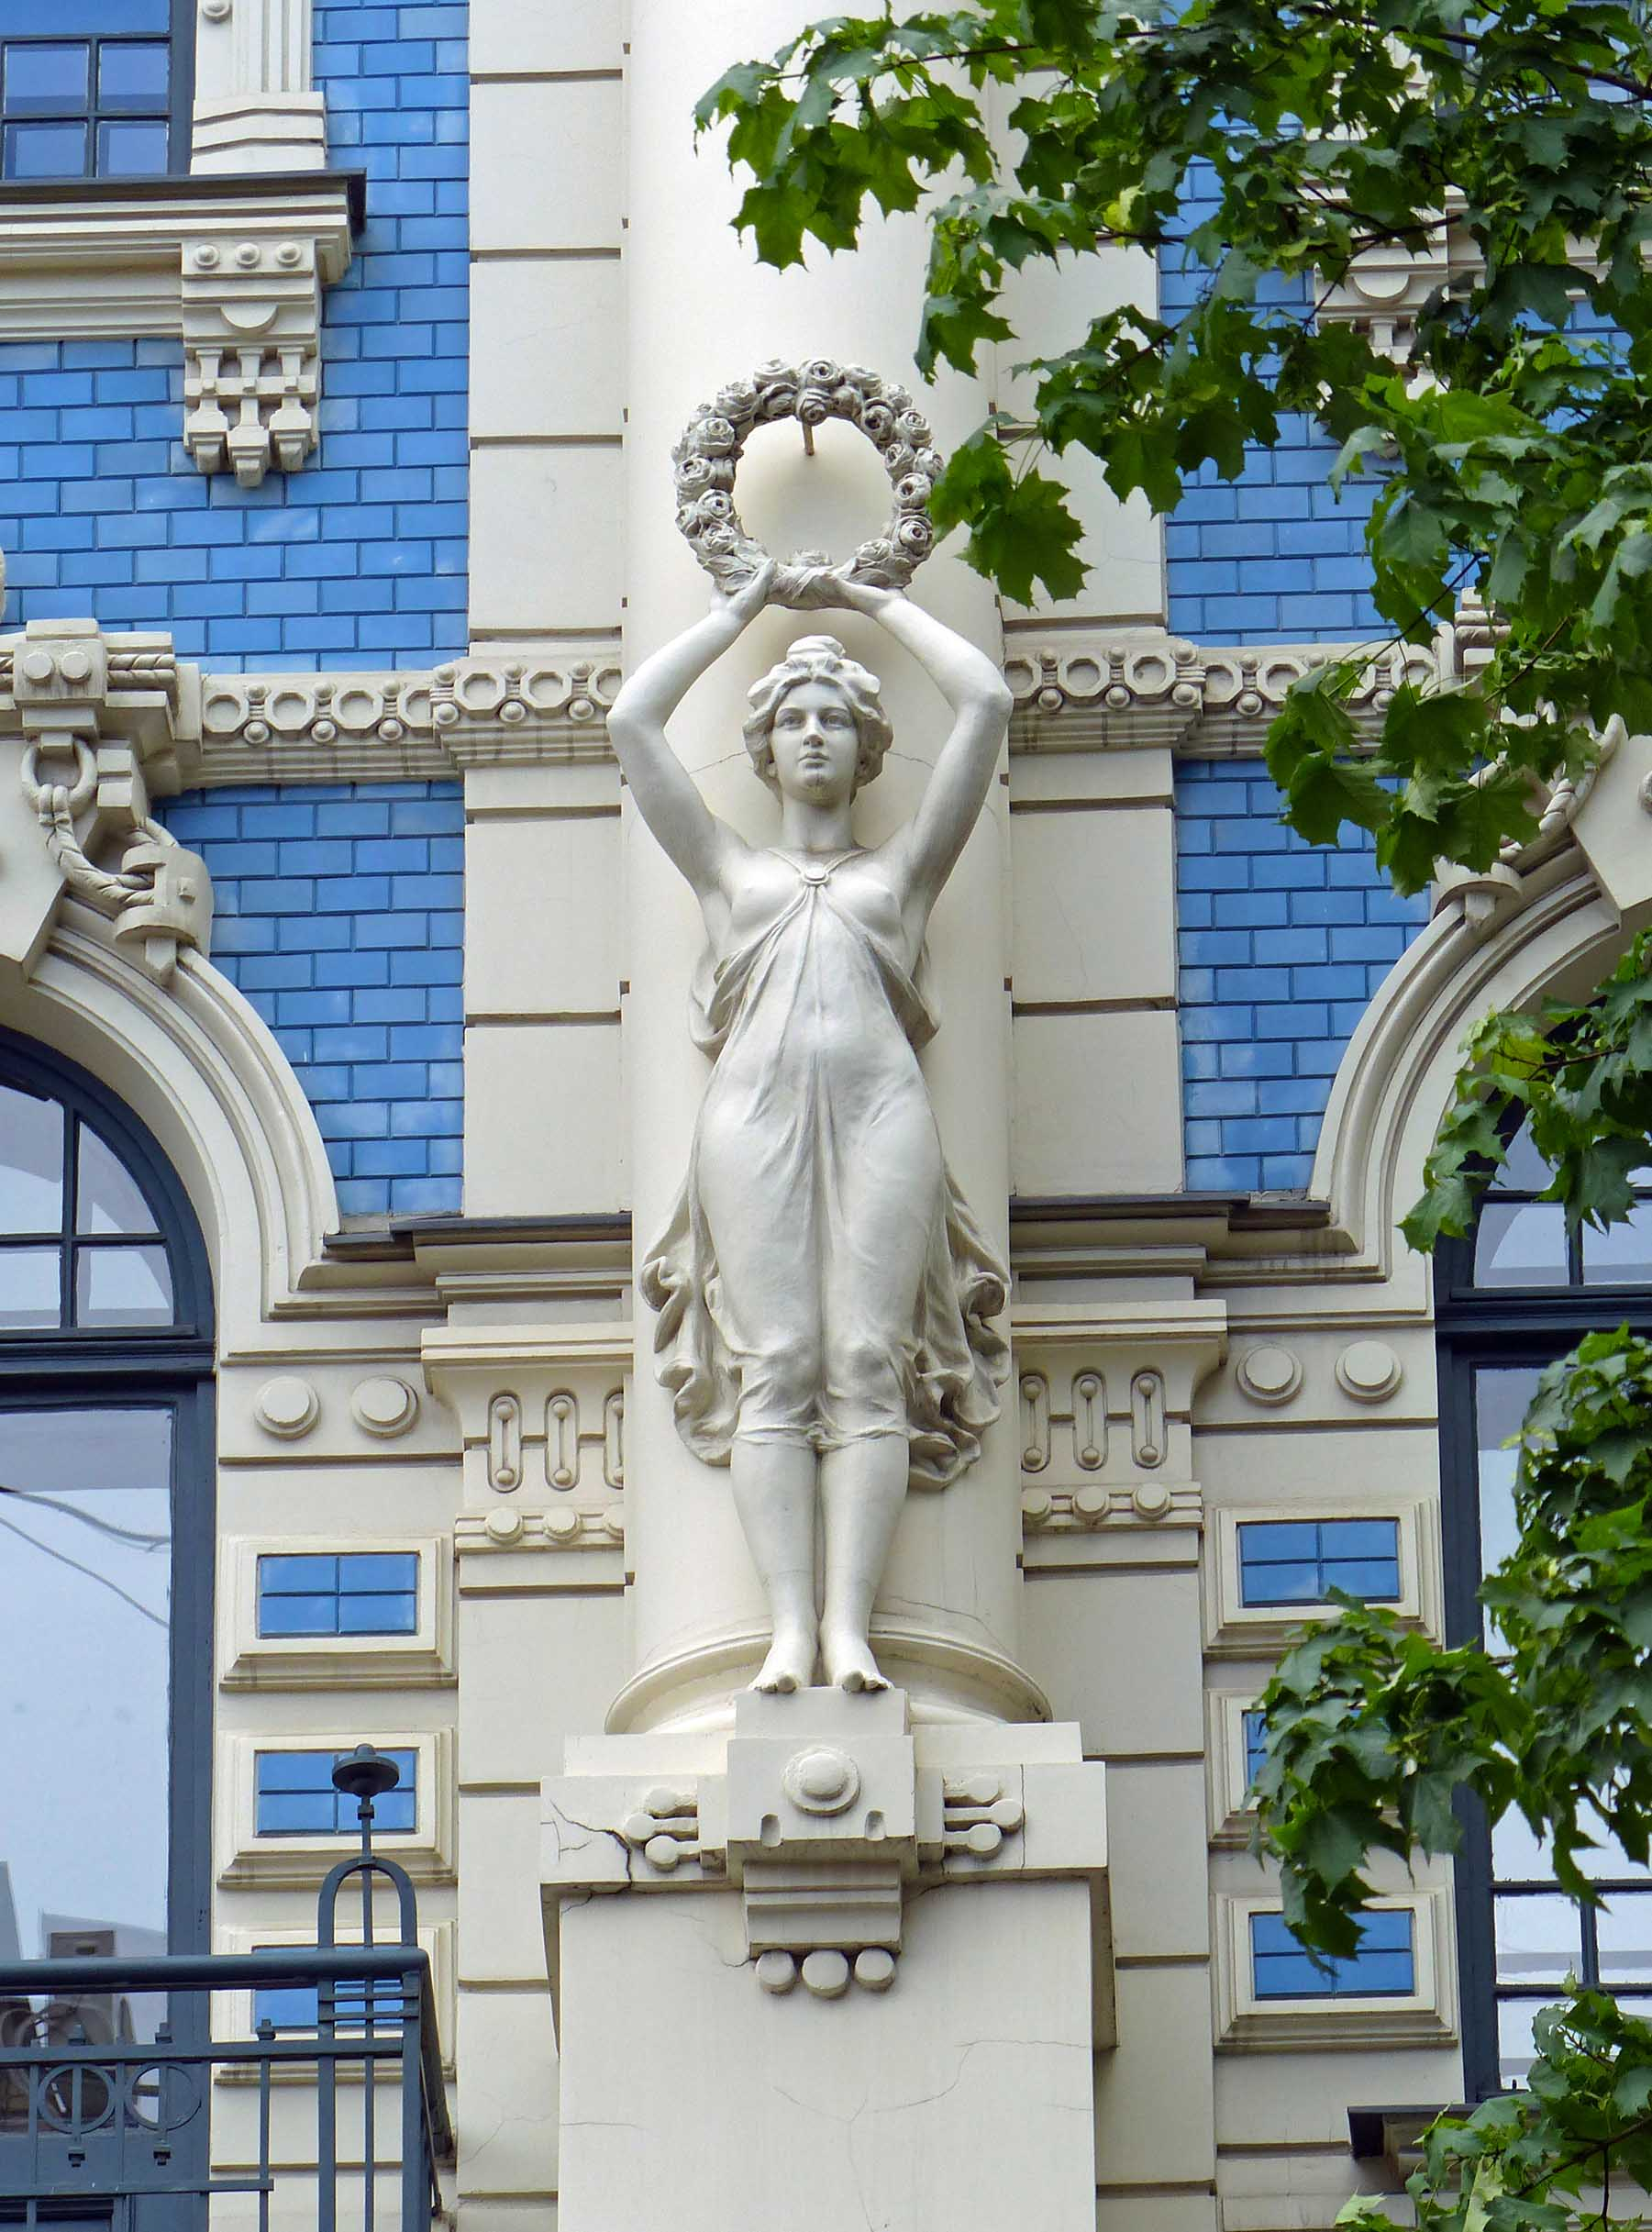 Stone female figure holding a wreath on the front of a blue building